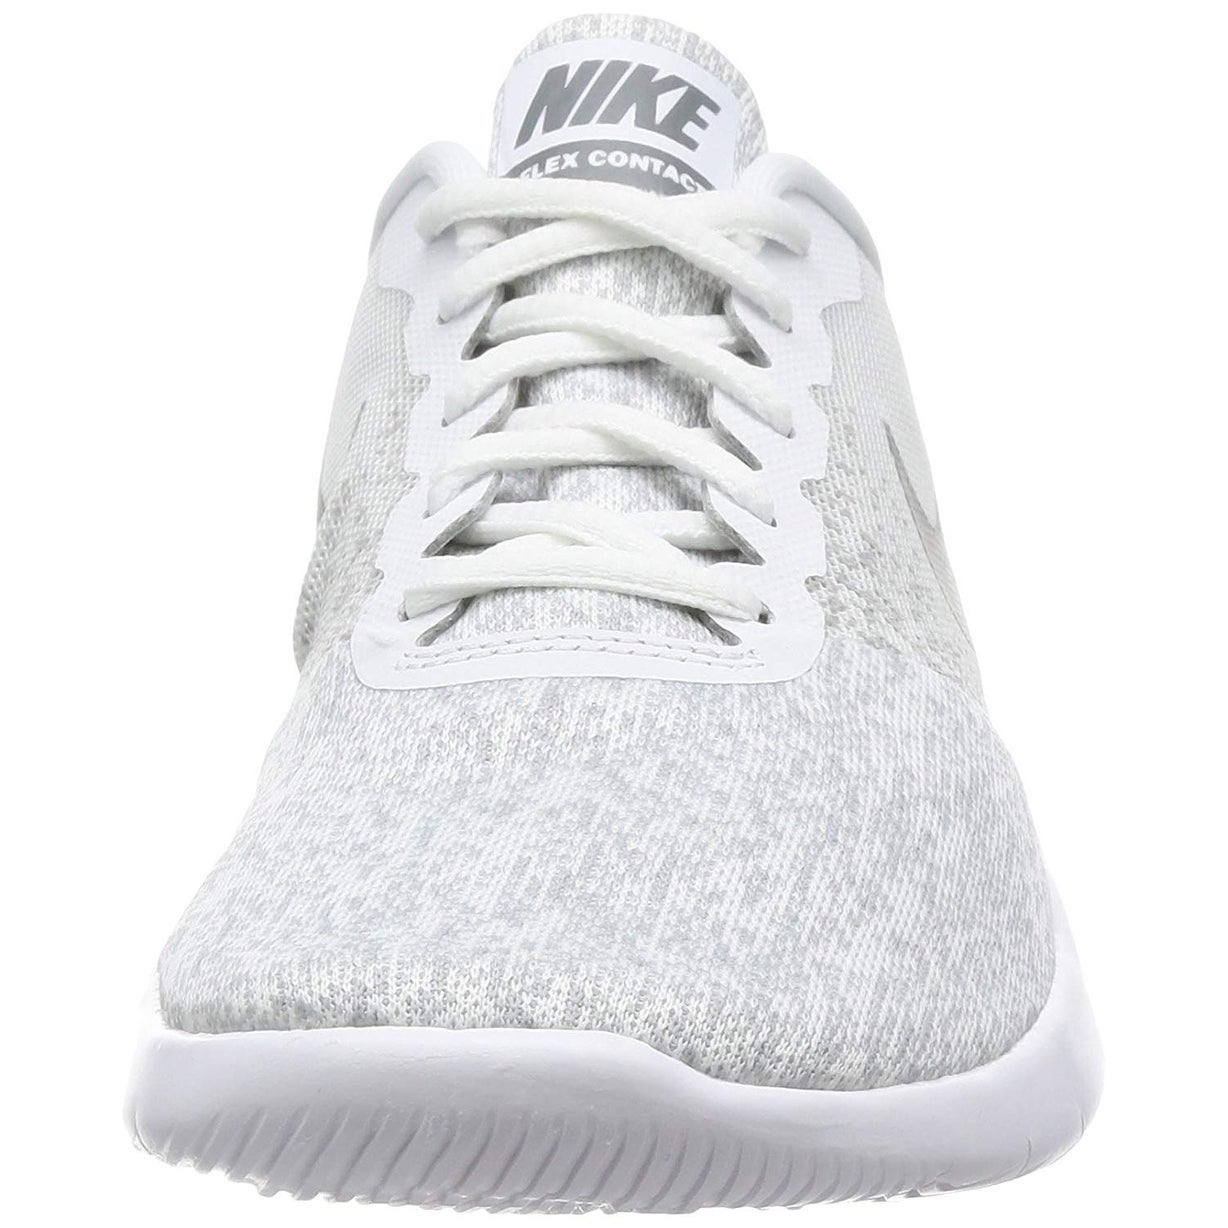 e335edea0209f Nike Women Flex Contact Running Shoe (8 B(M) Us, White/Cool Grey-Metallic  Silver)